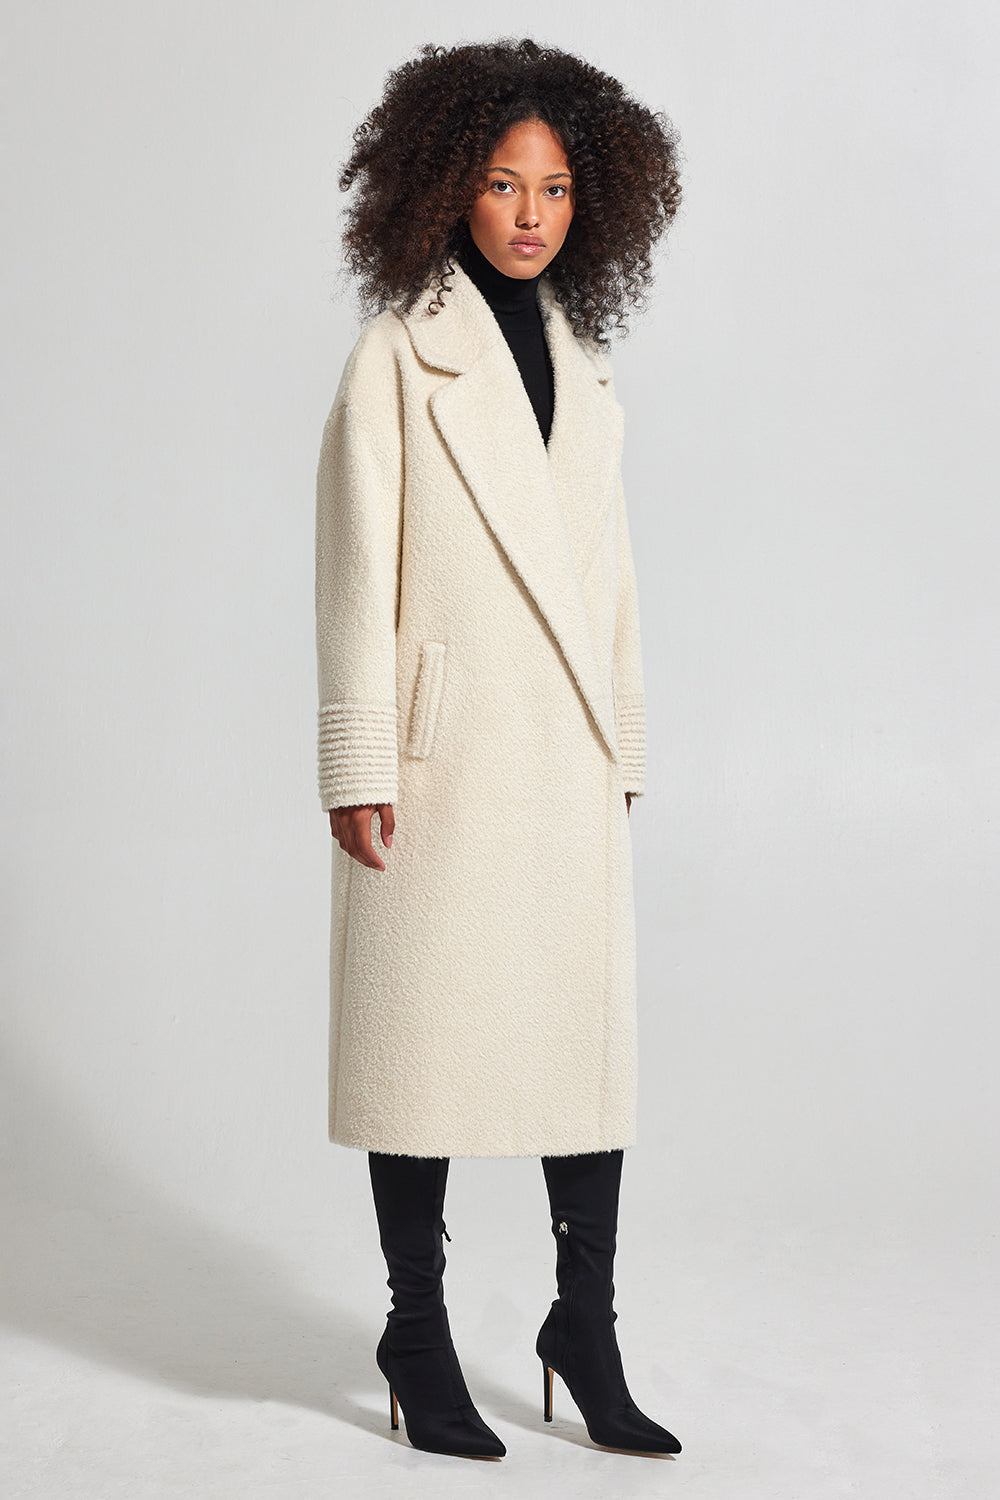 Sentaler Bouclé Alpaca Long Oversized Notched Collar Coat featured in Bouclé Alpaca and available in Ivory. Seen from side.